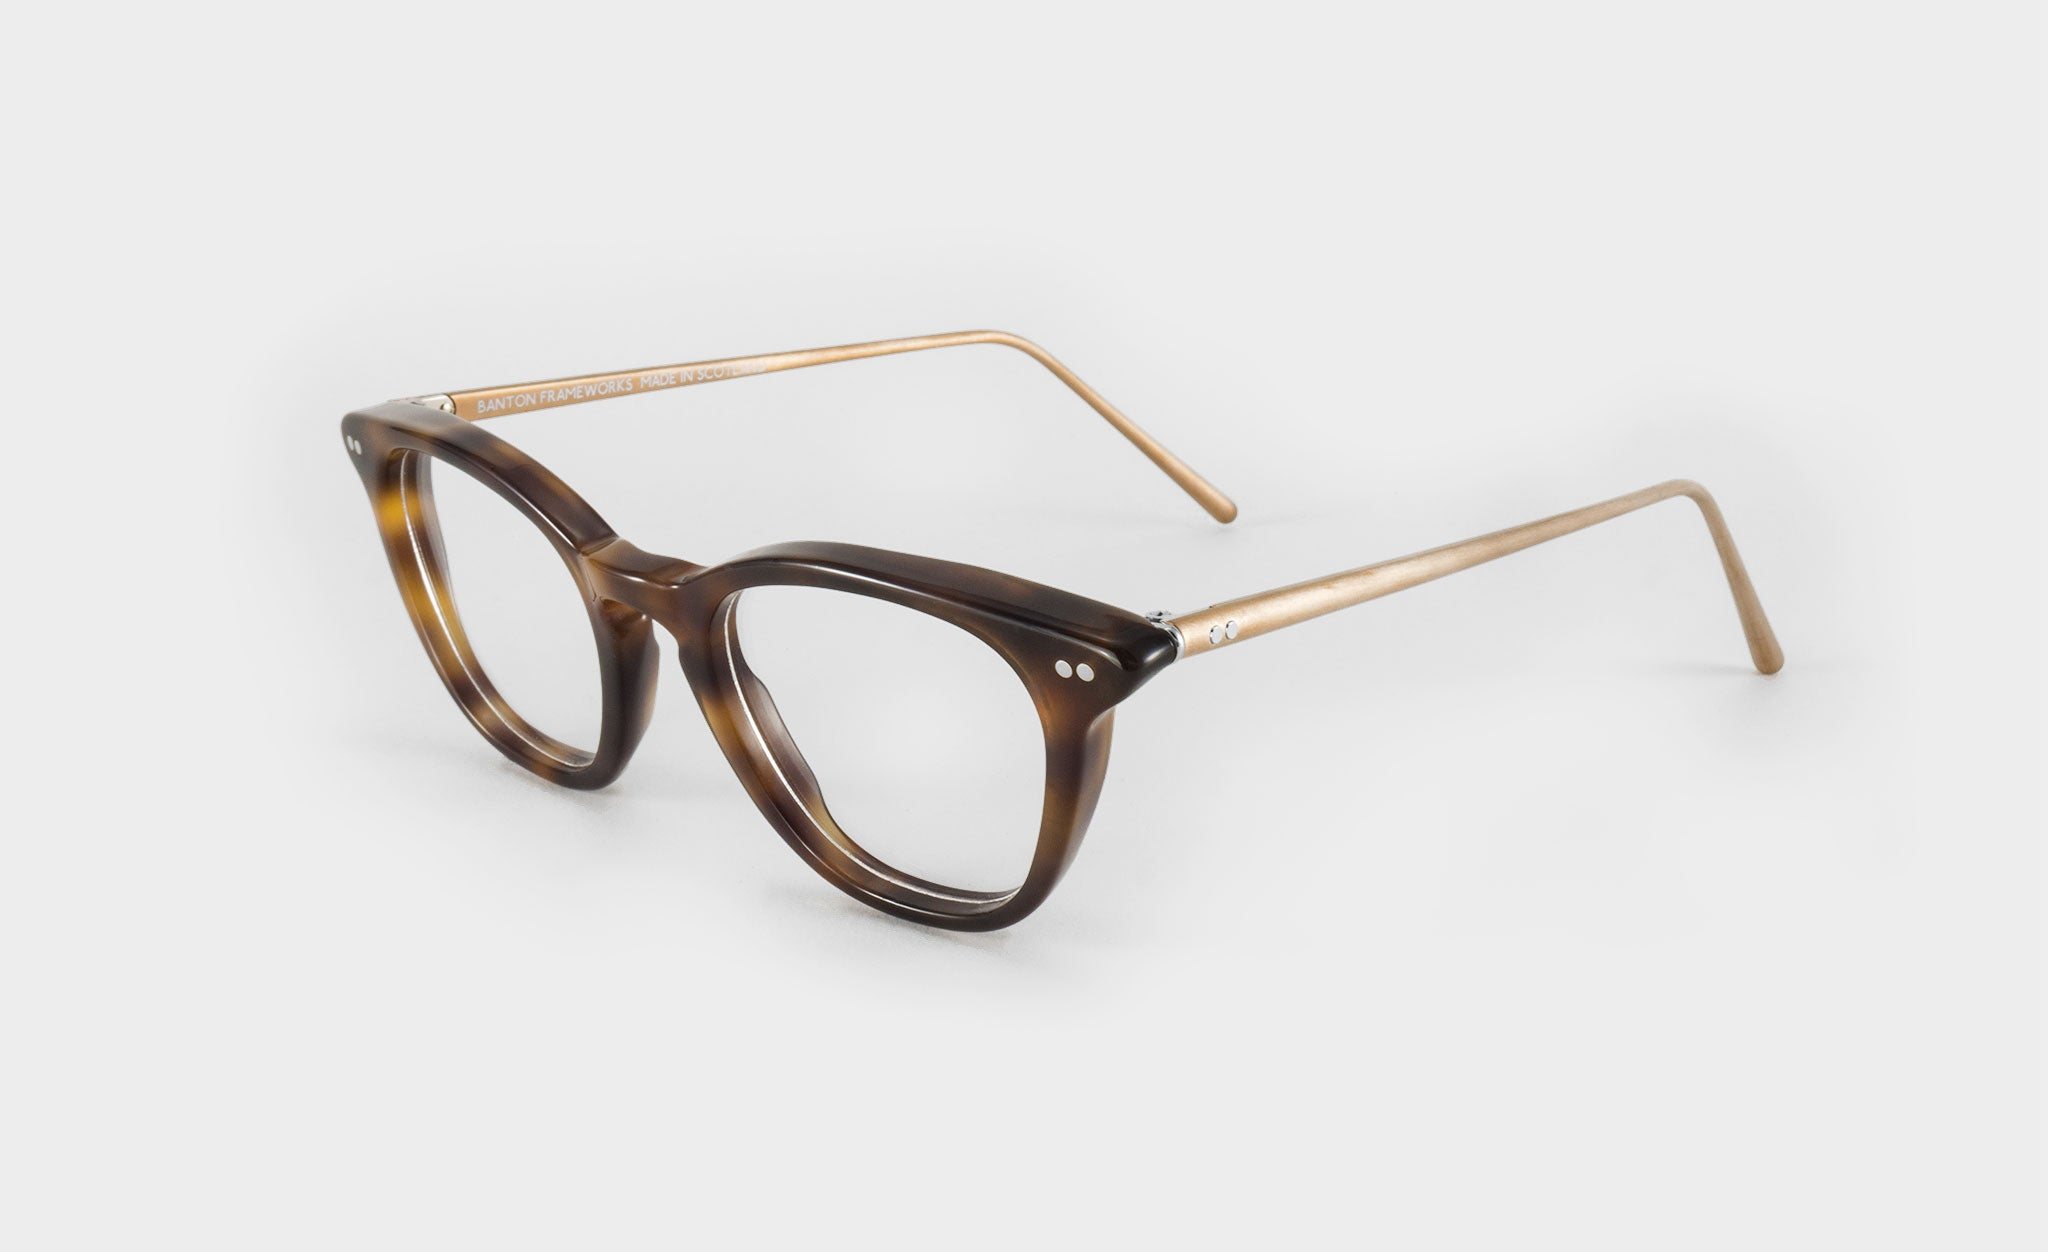 tortoise shell glasses side view